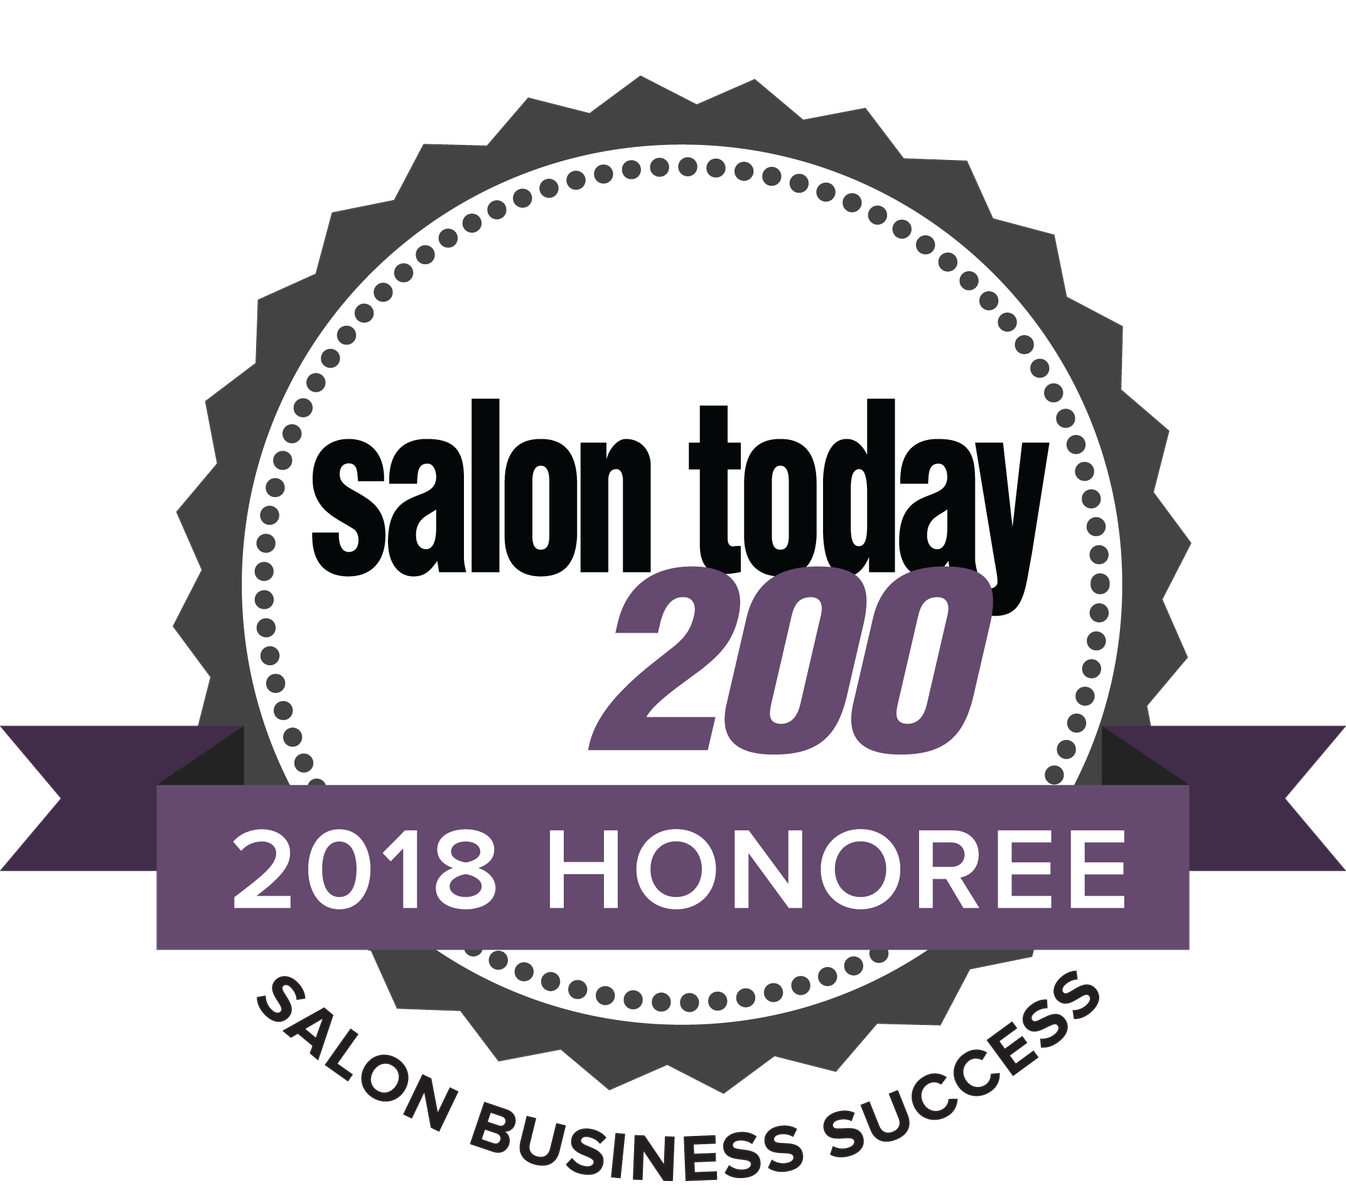 Salon Today 2018 honoree logo